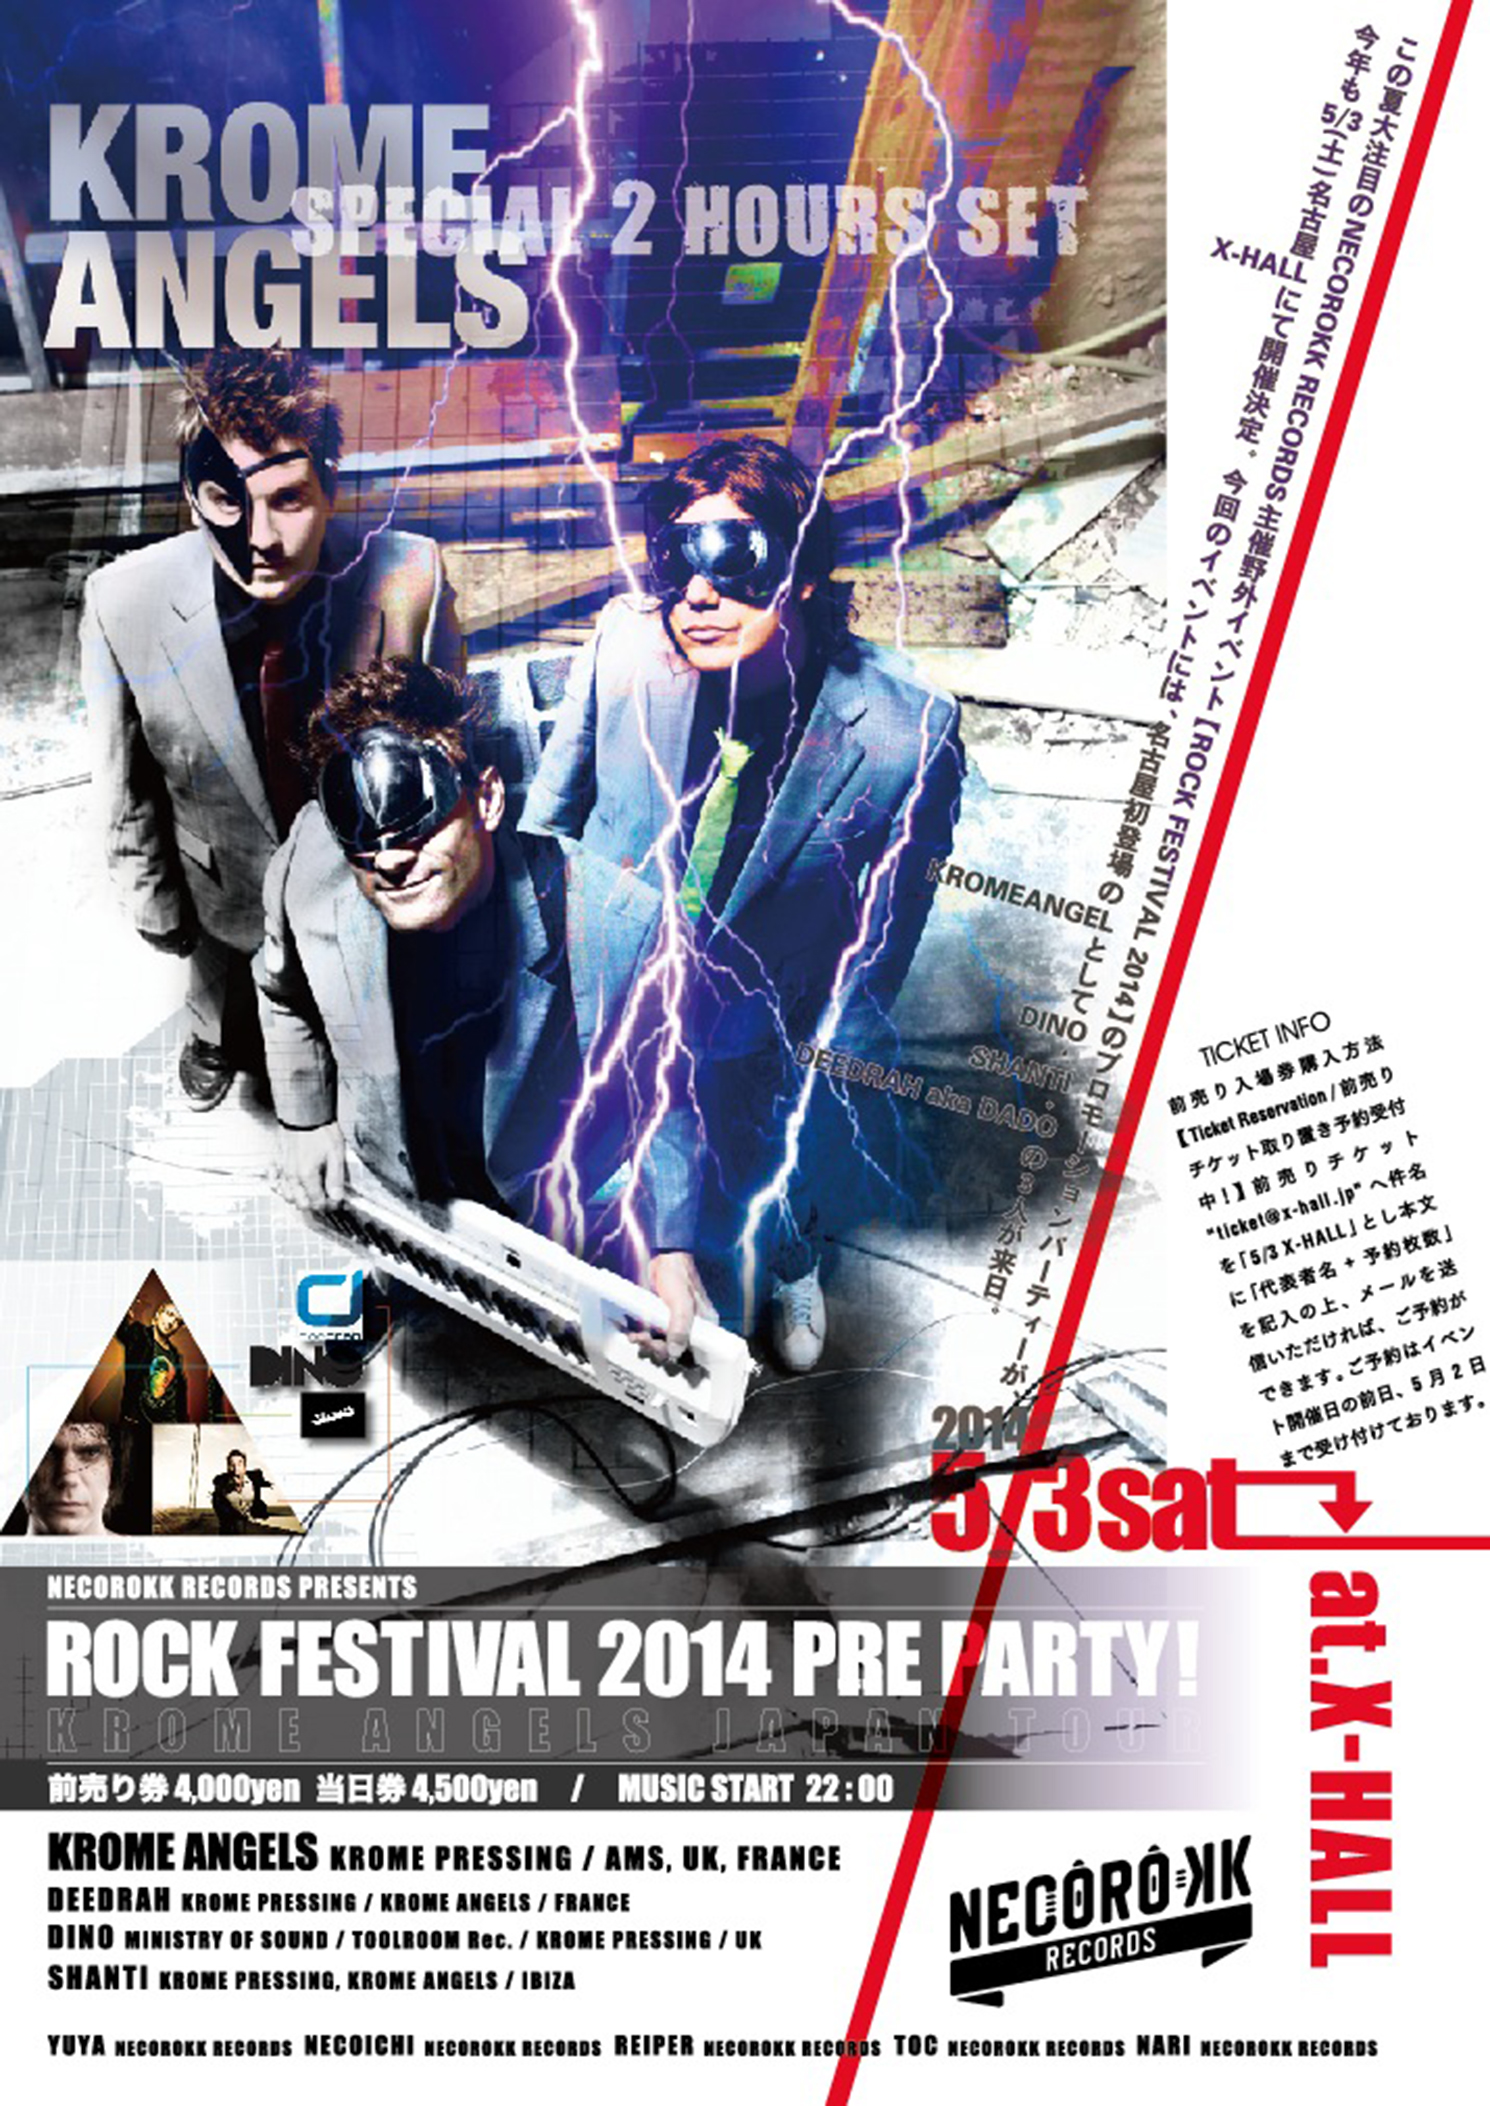 ROCK Fes. Pre Party